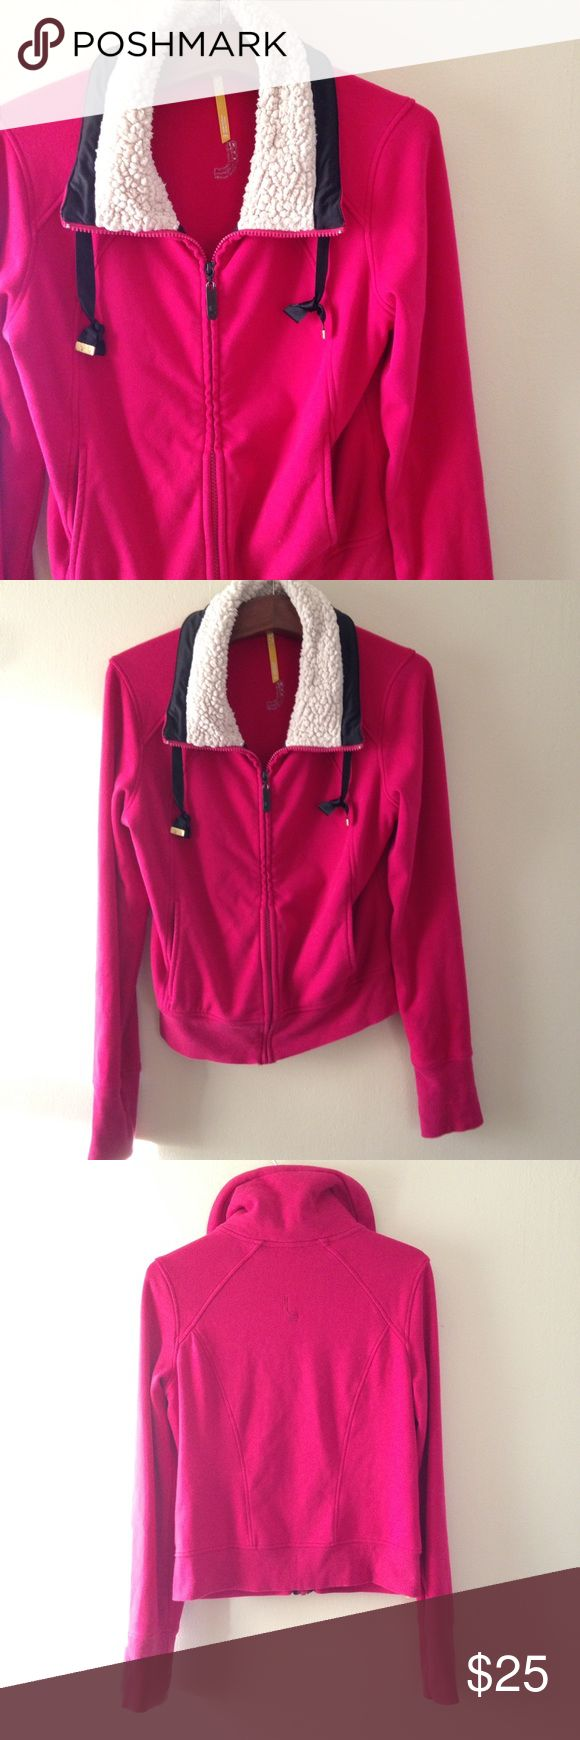 Lolë Faux Shearling Collar Zip Up Faux shearling collar zip up jacket from Lolë. Size: M. Color: pink. Two front pockets, draw string collar, 46% viscose modal, 46% cotton, 8% elastane. Lole Jackets & Coats